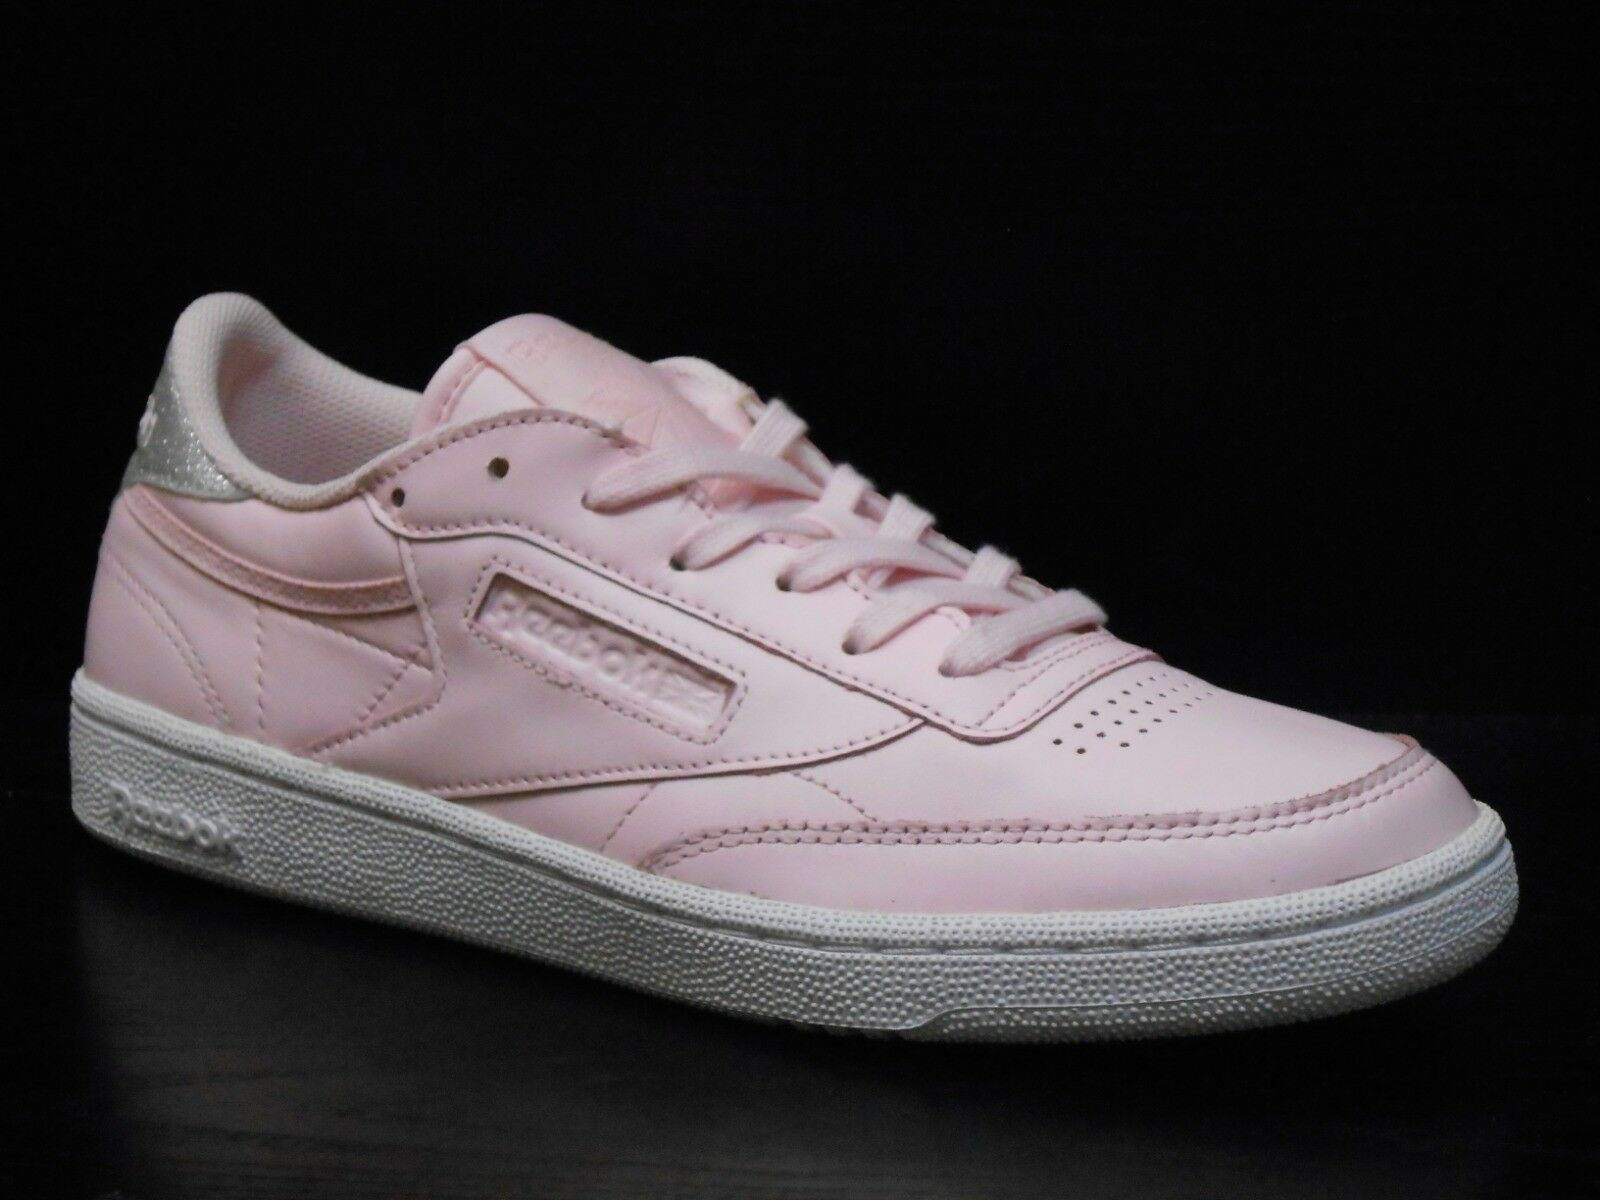 Reebok Club C 85 Diamond Womens Trainer Shoe  Size 6.5 Pink White  Shoe /- 2138bf